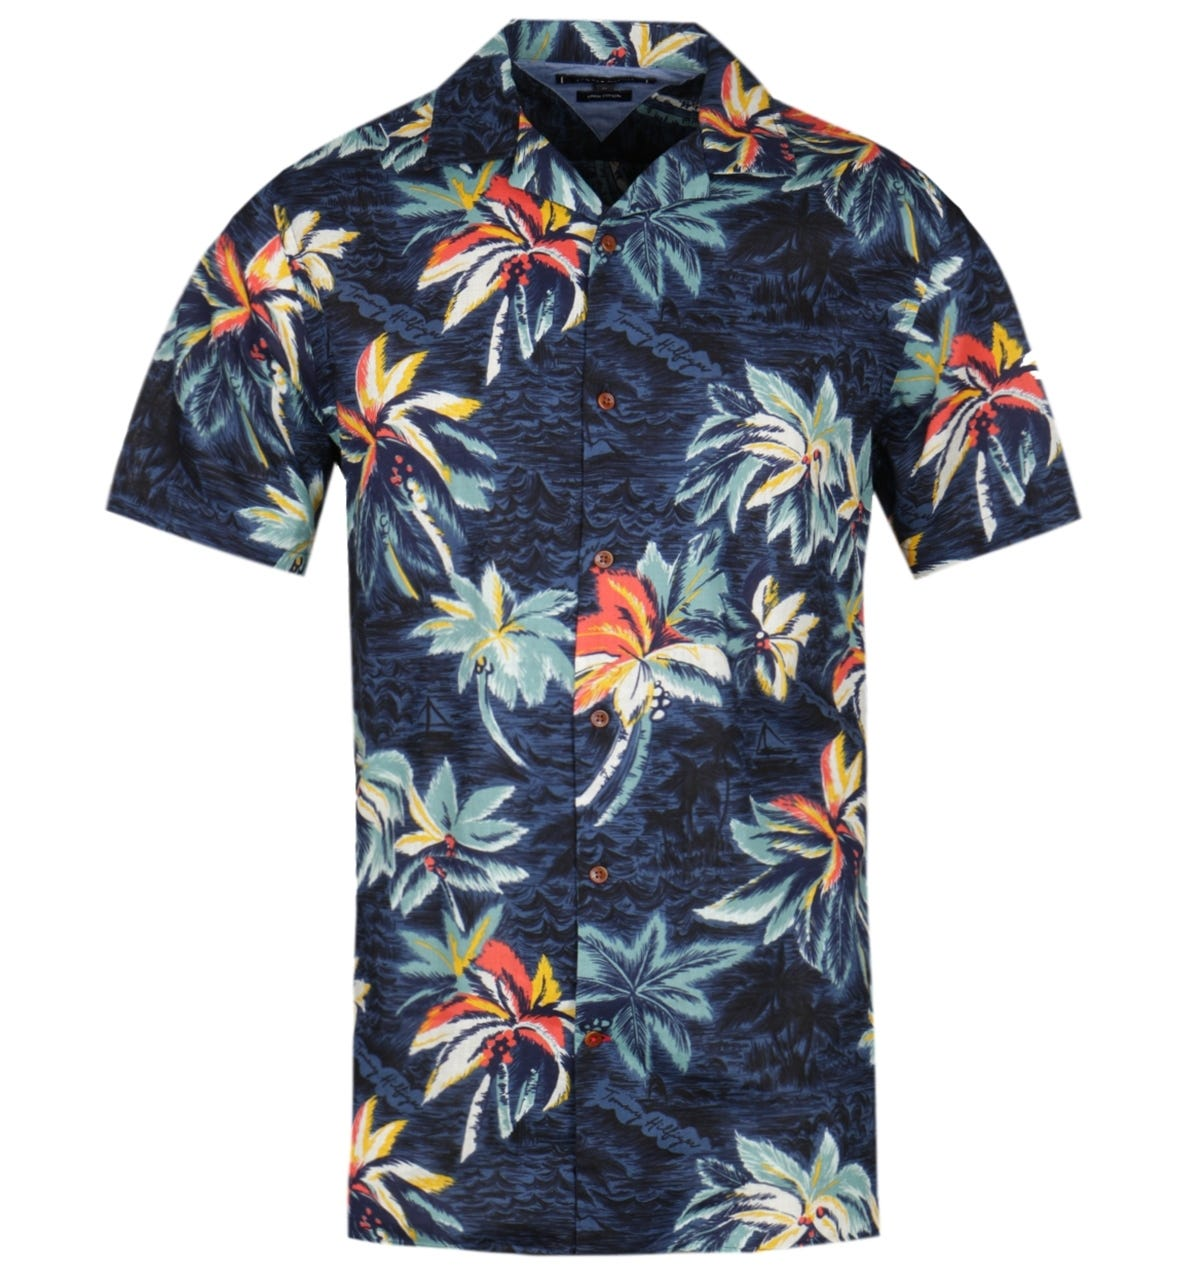 Dålig tro Behandling Oxid  Tommy Hilfiger Short Sleeve Hawaiian Print Shirt